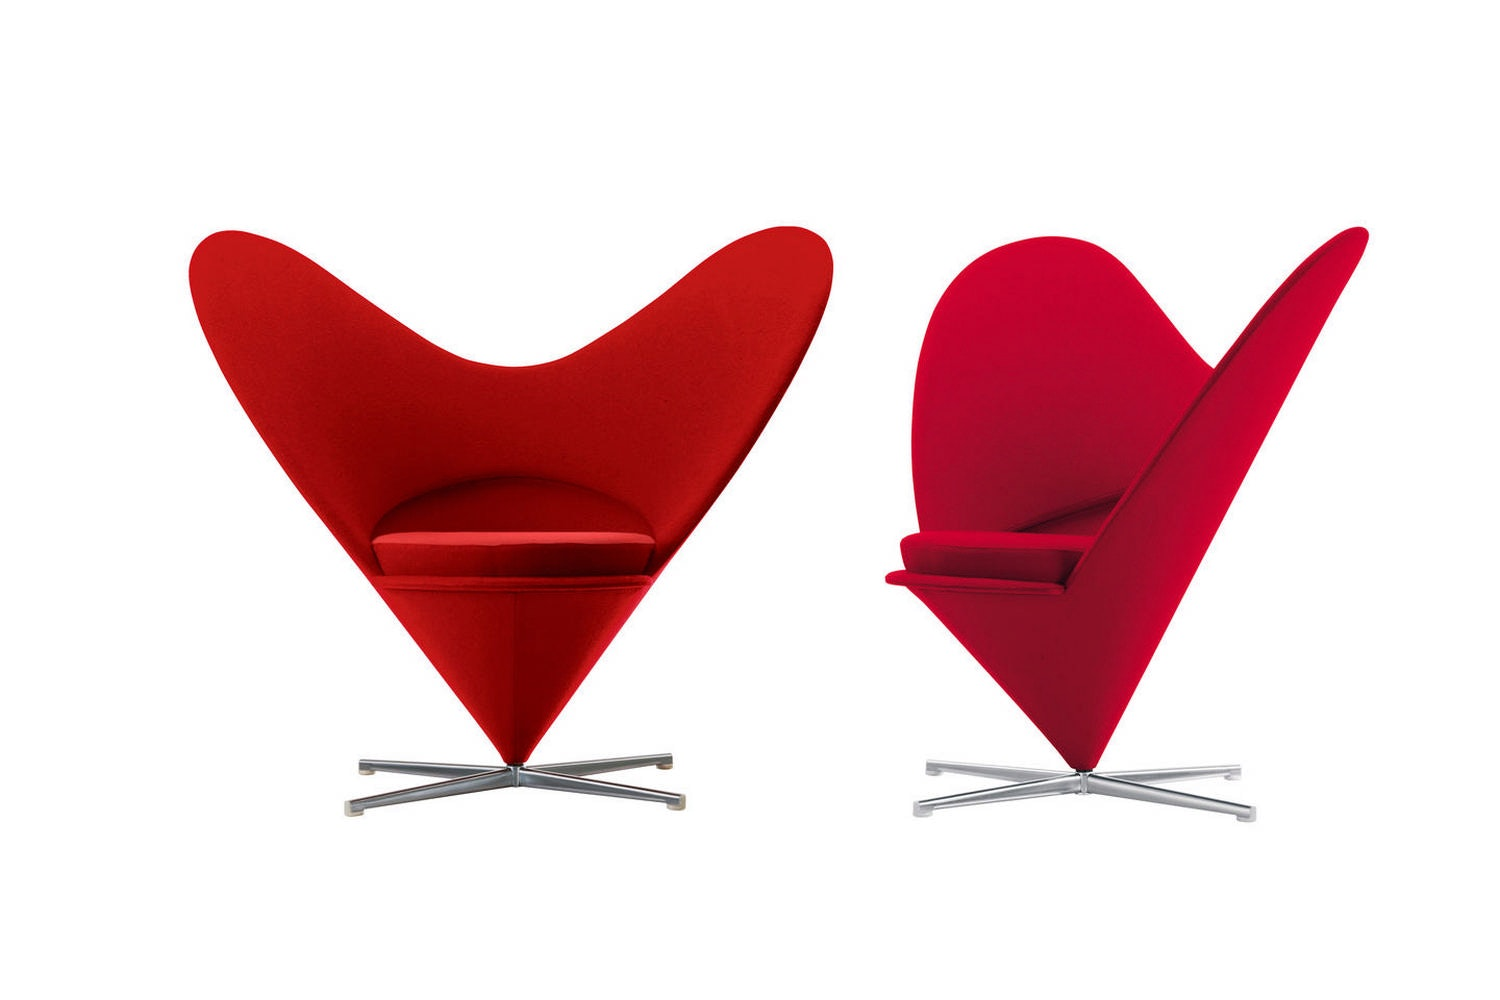 Heart Cone Chair by Verner Panton for Vitra